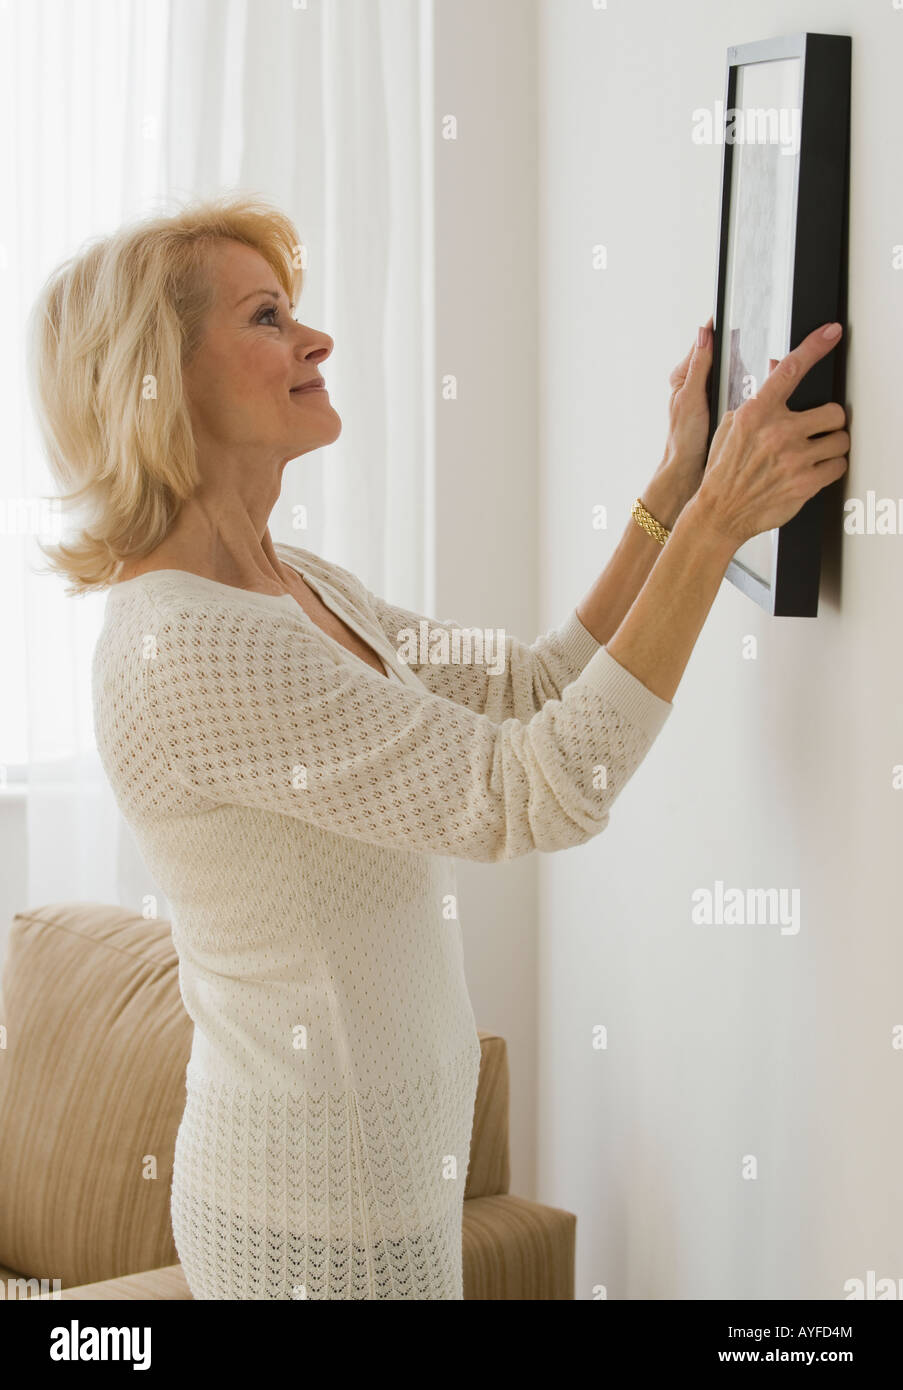 Senior woman hanging picture on wall - Stock Image